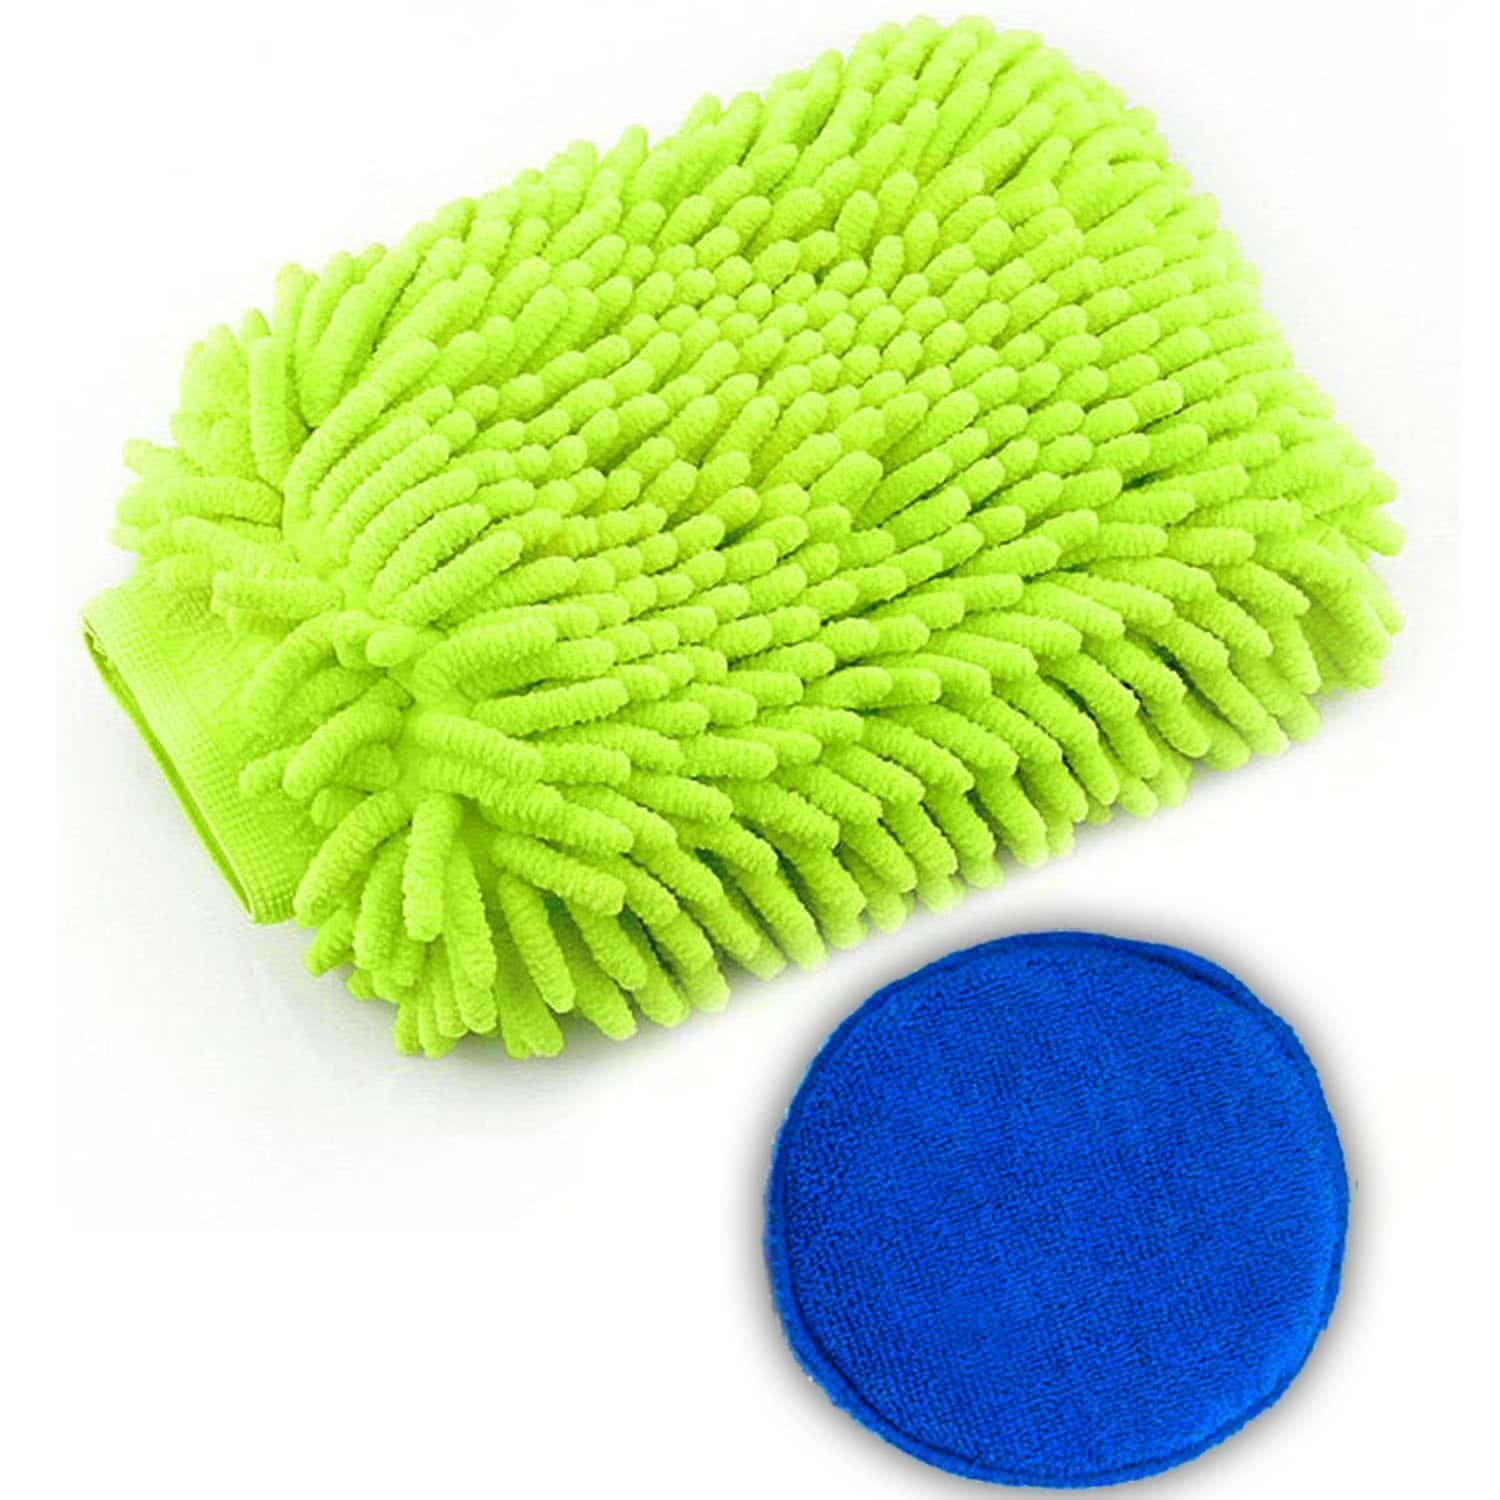 Waterproof Car Wash Mittt and Wax Applicator Kit-2 Pack for $5.97 AC @Amazon